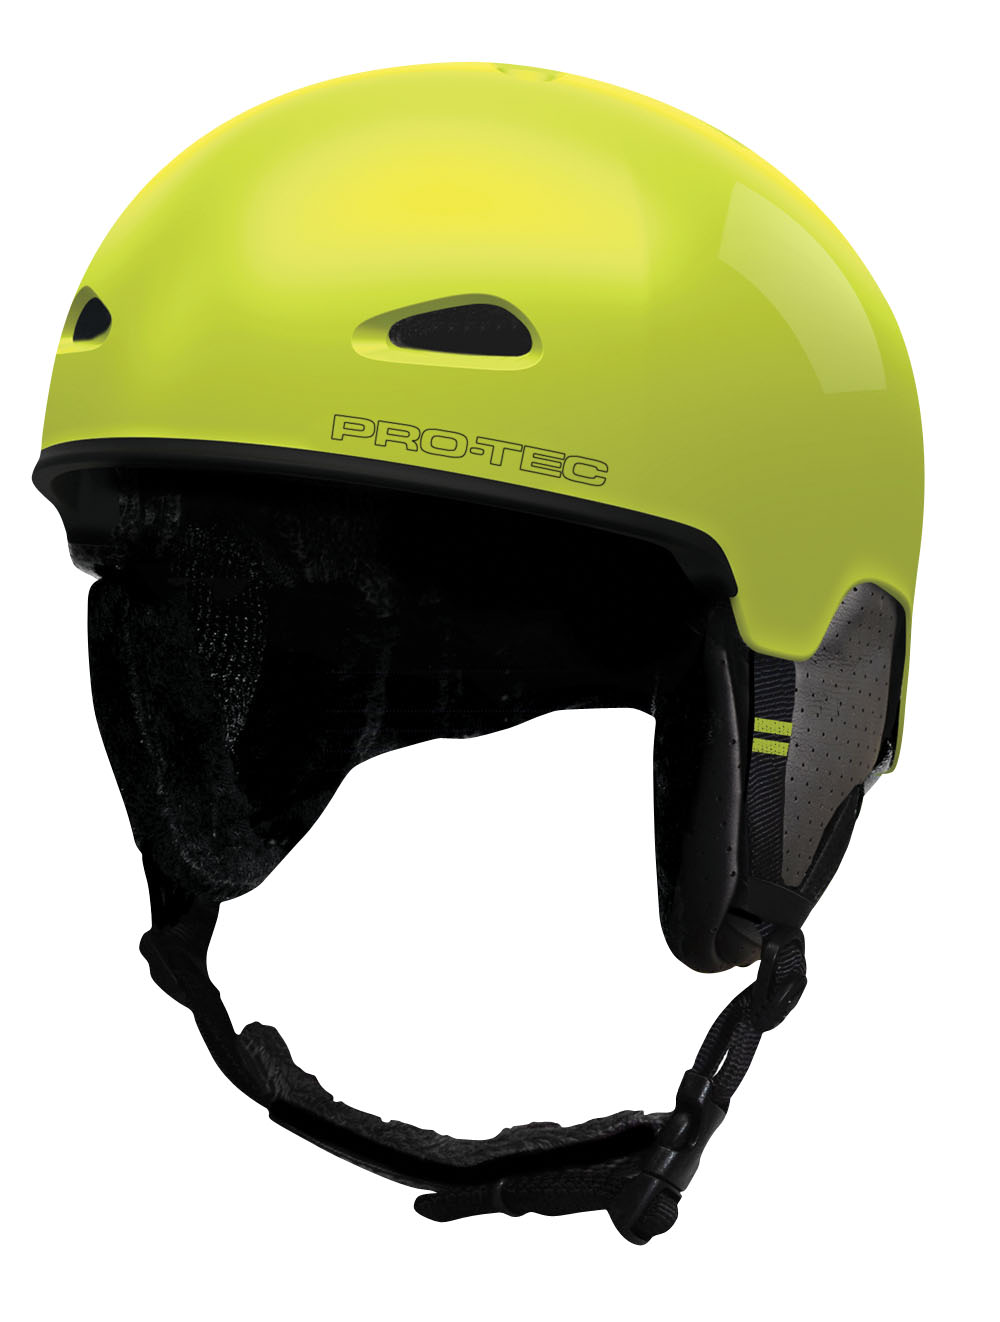 Pro-Tec Commander Helmet with Boa Closure System